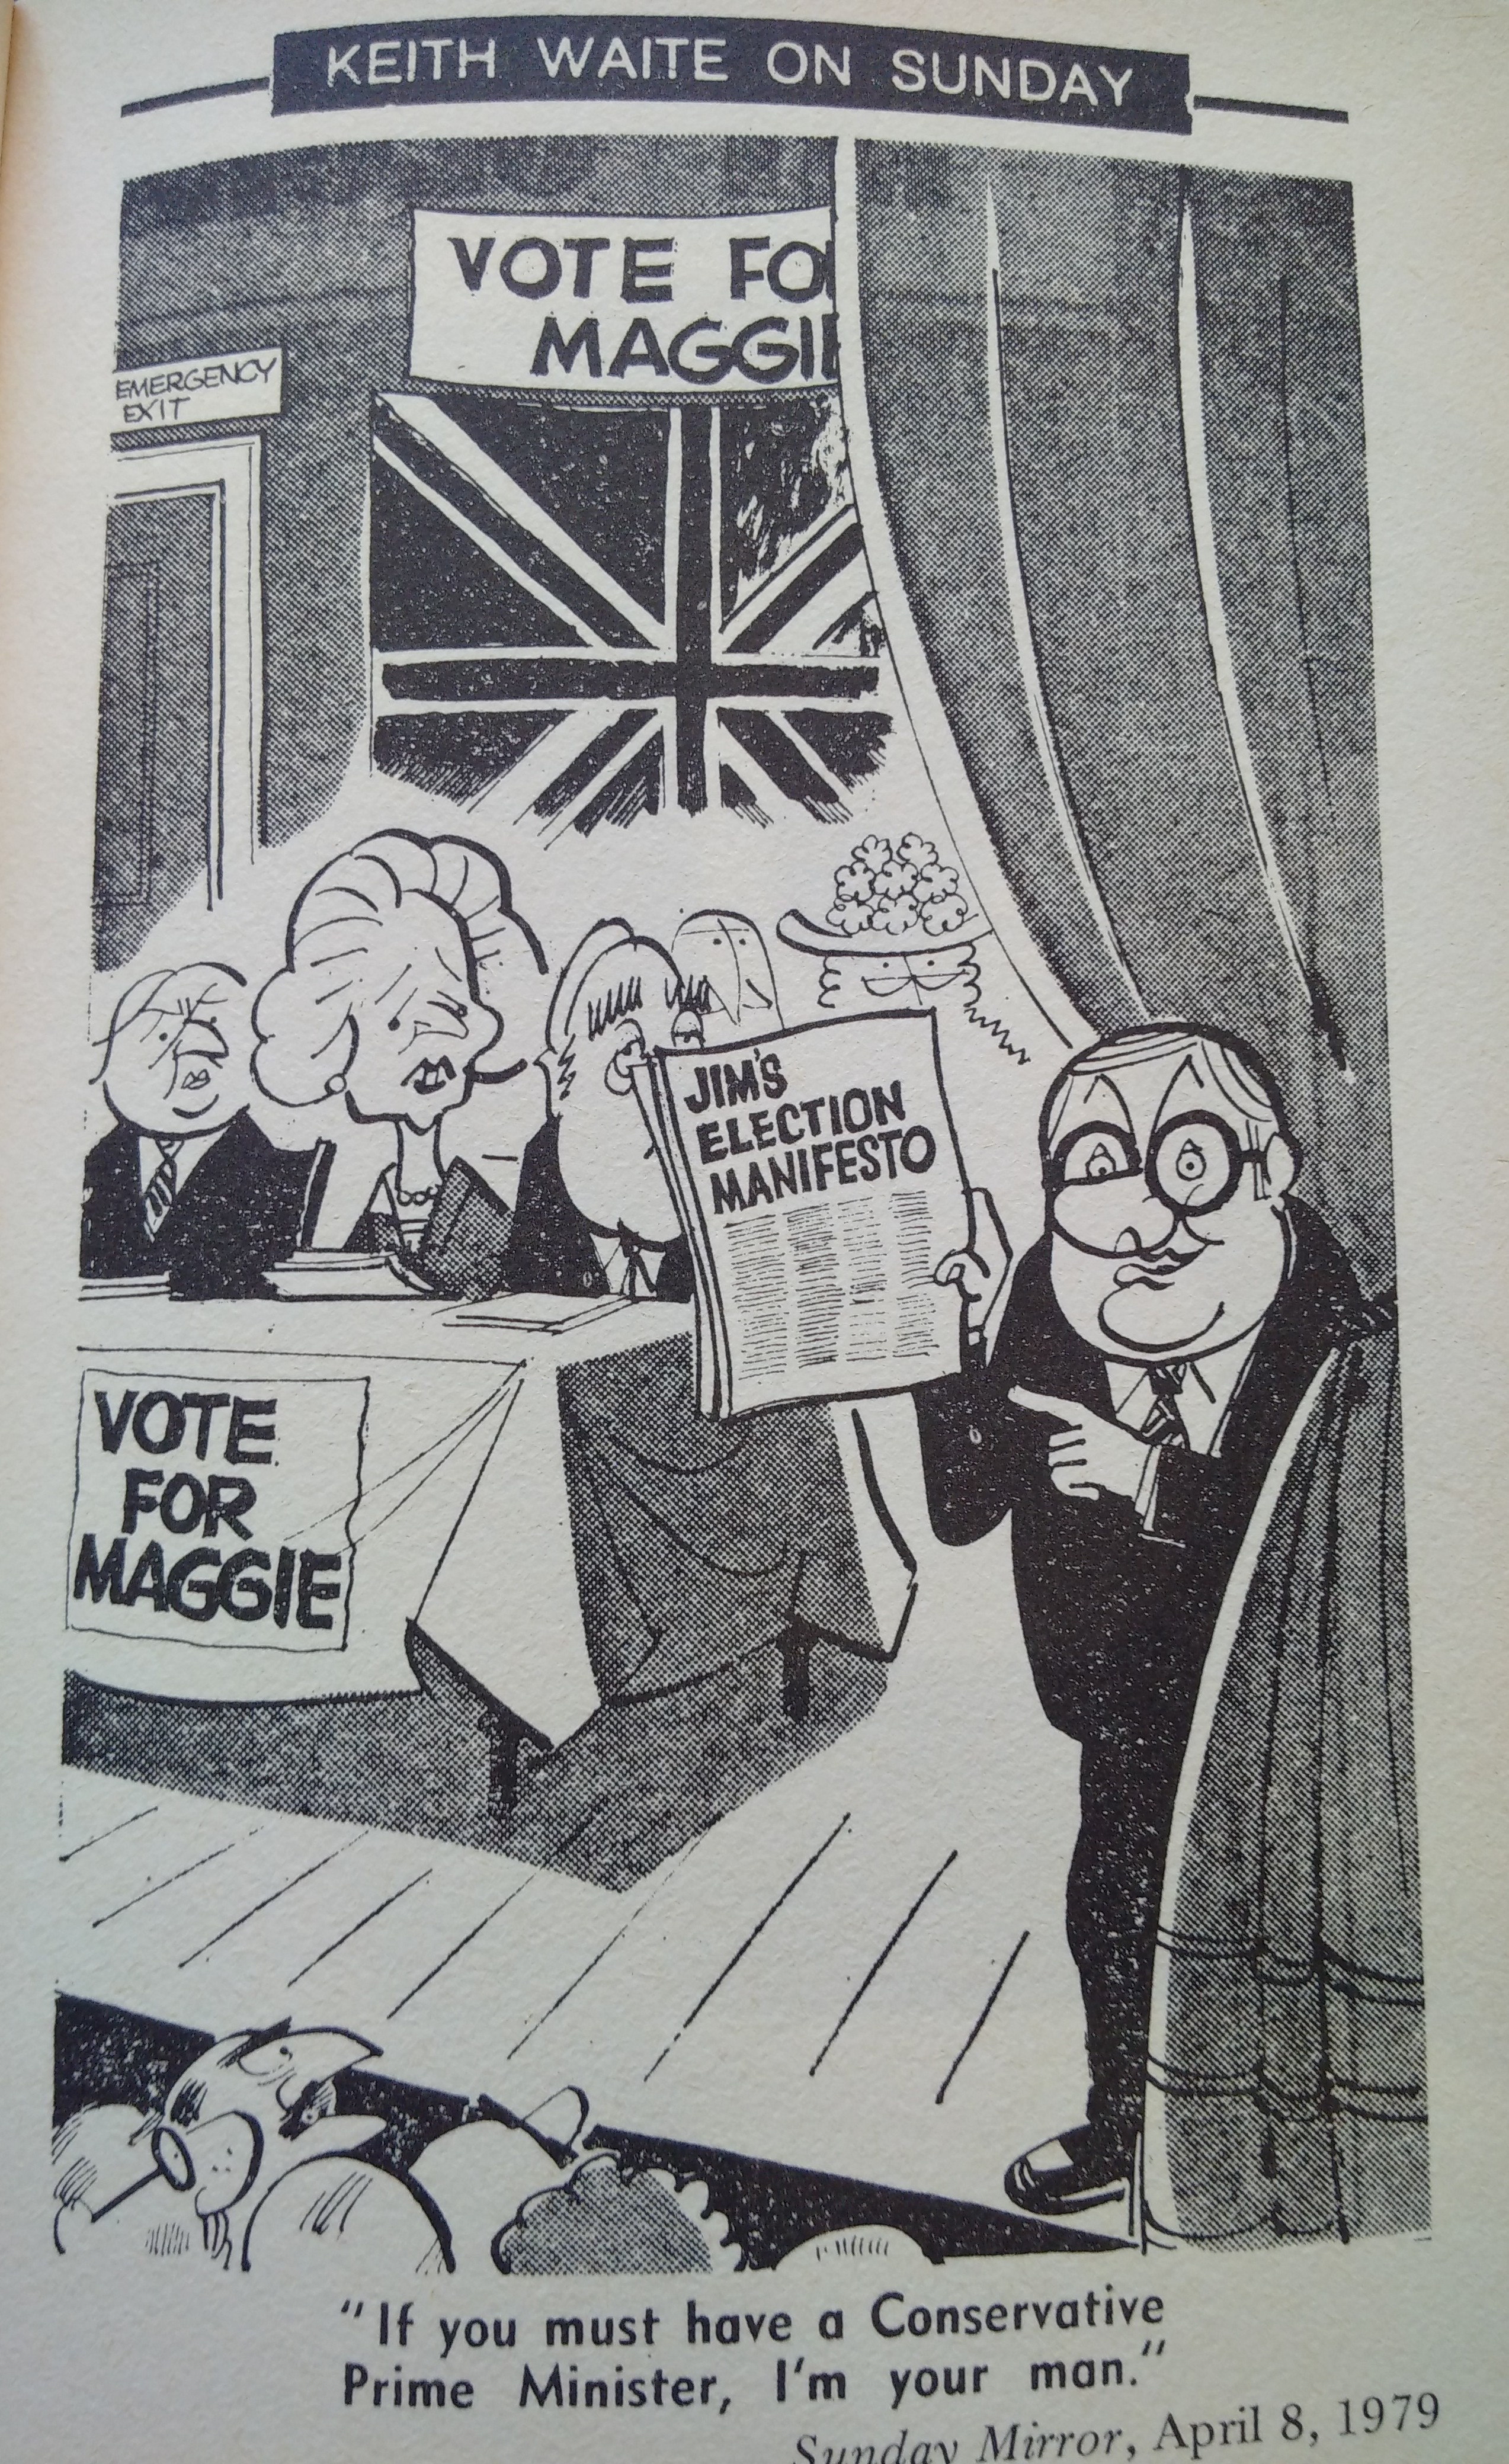 Source: The British General Election of 1979